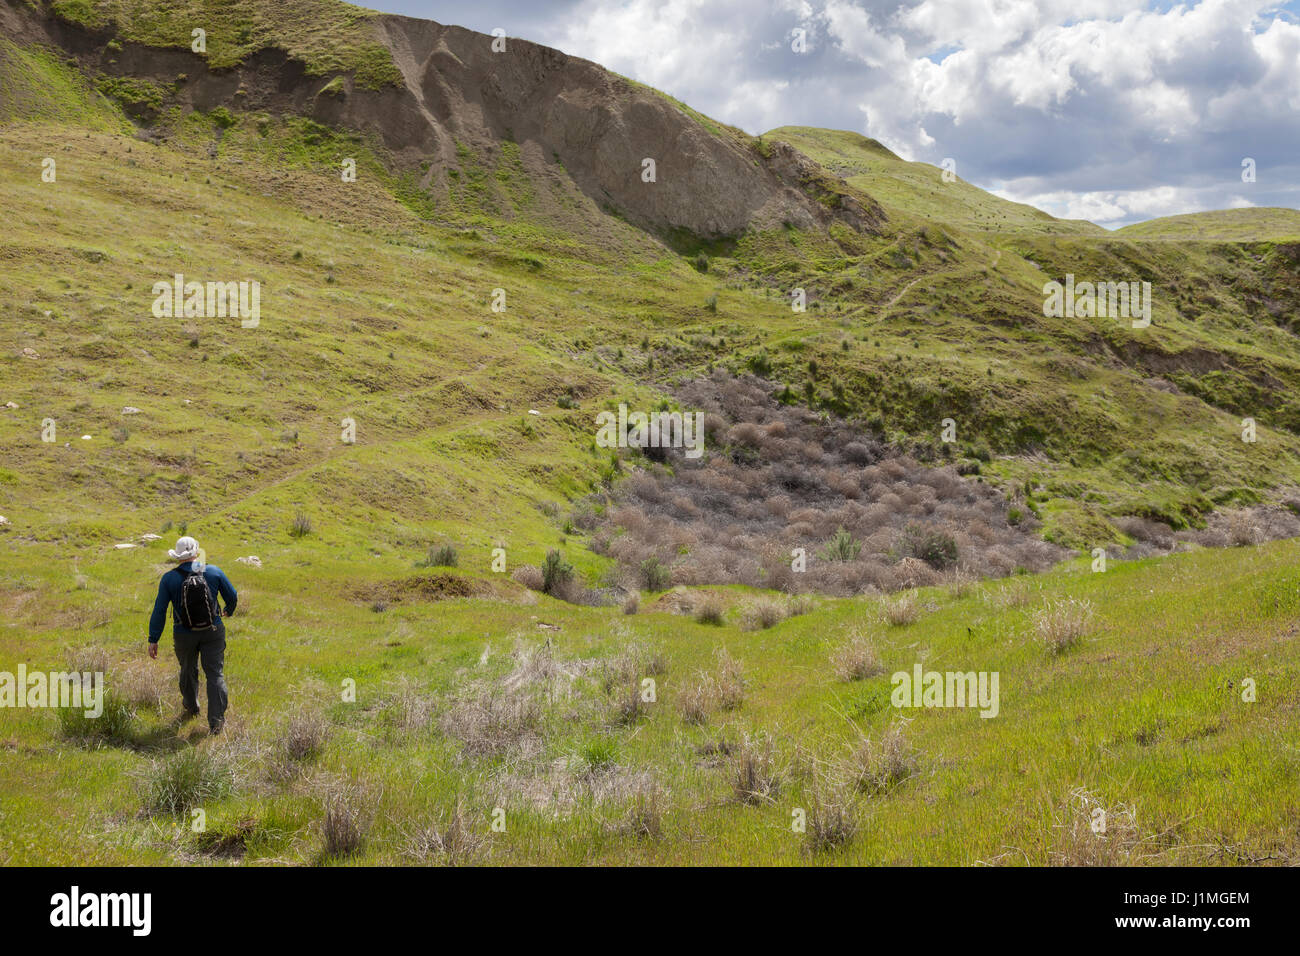 Franklin County, Washington: Man hiking the White Bluffs along the Columbia River in Hanford Reach National Monument. - Stock Image